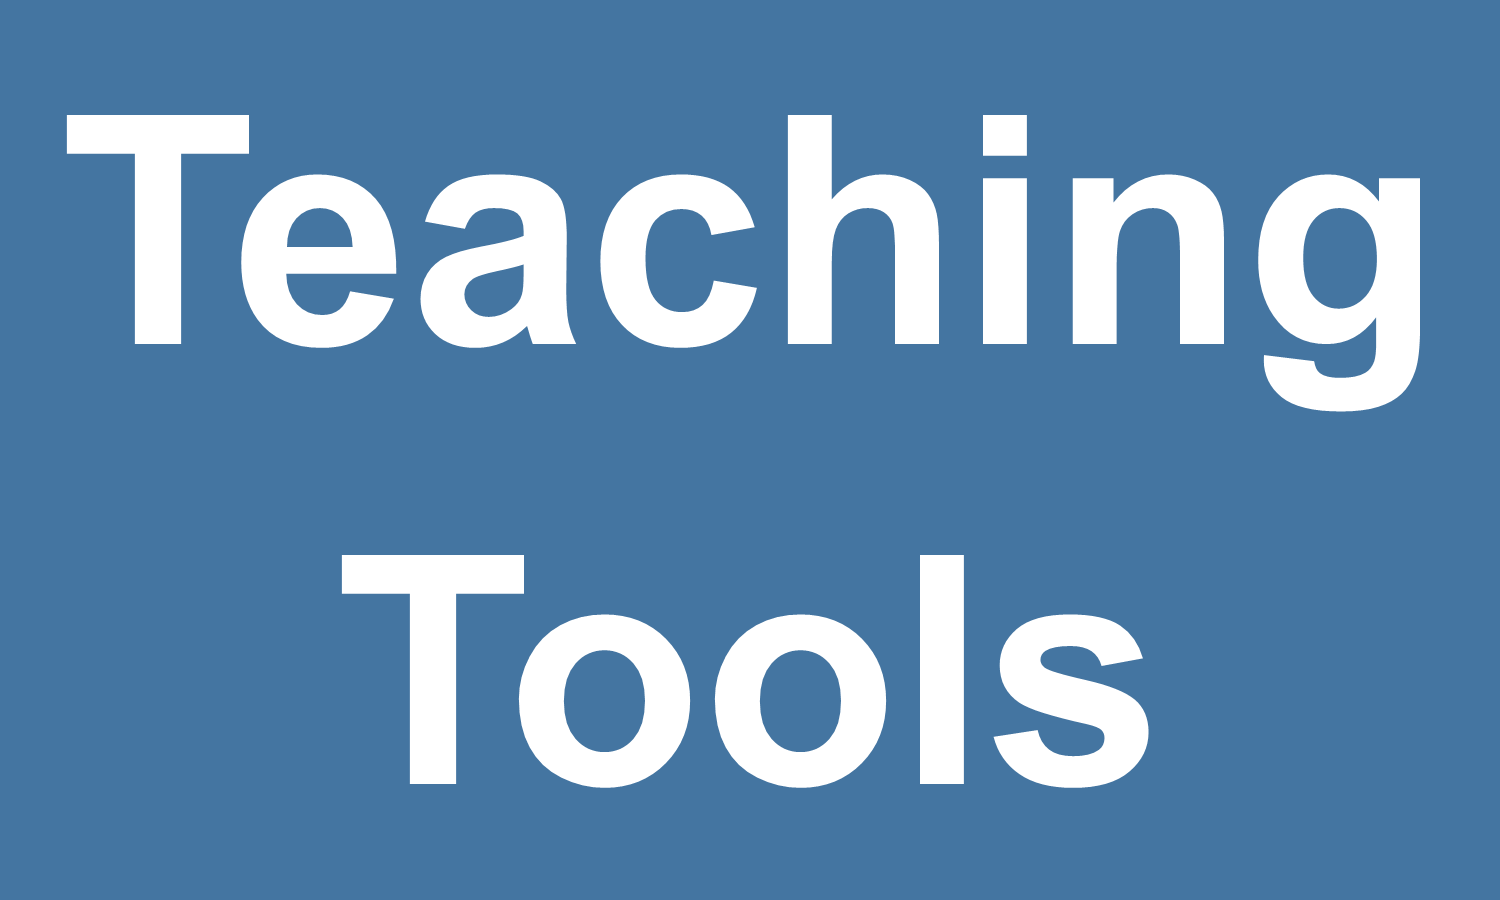 teaching-tools-buttons-2022.png